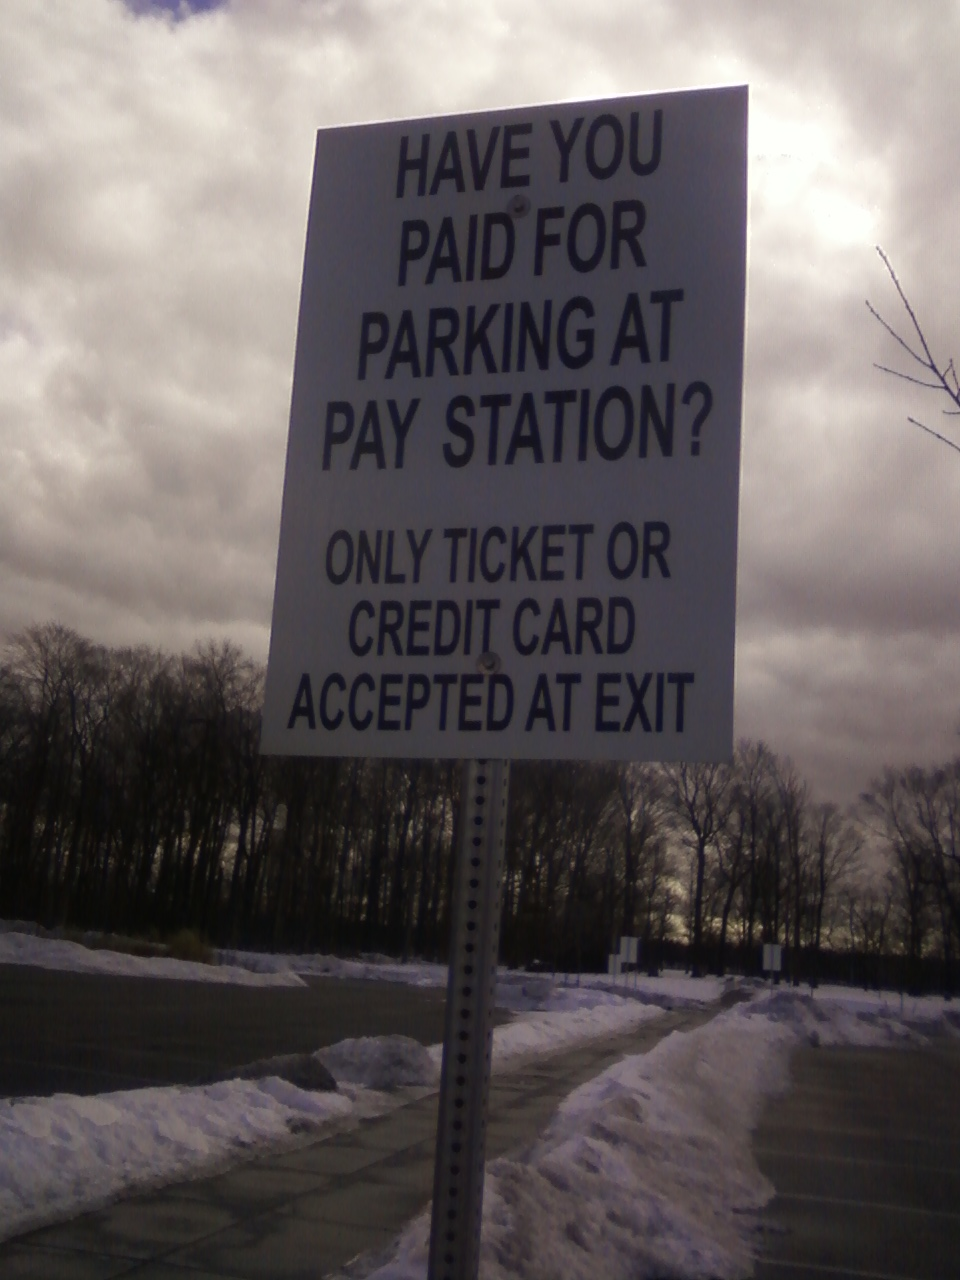 Complaints about Goat Island parking mount; Resentment of State Agency builds among local residents